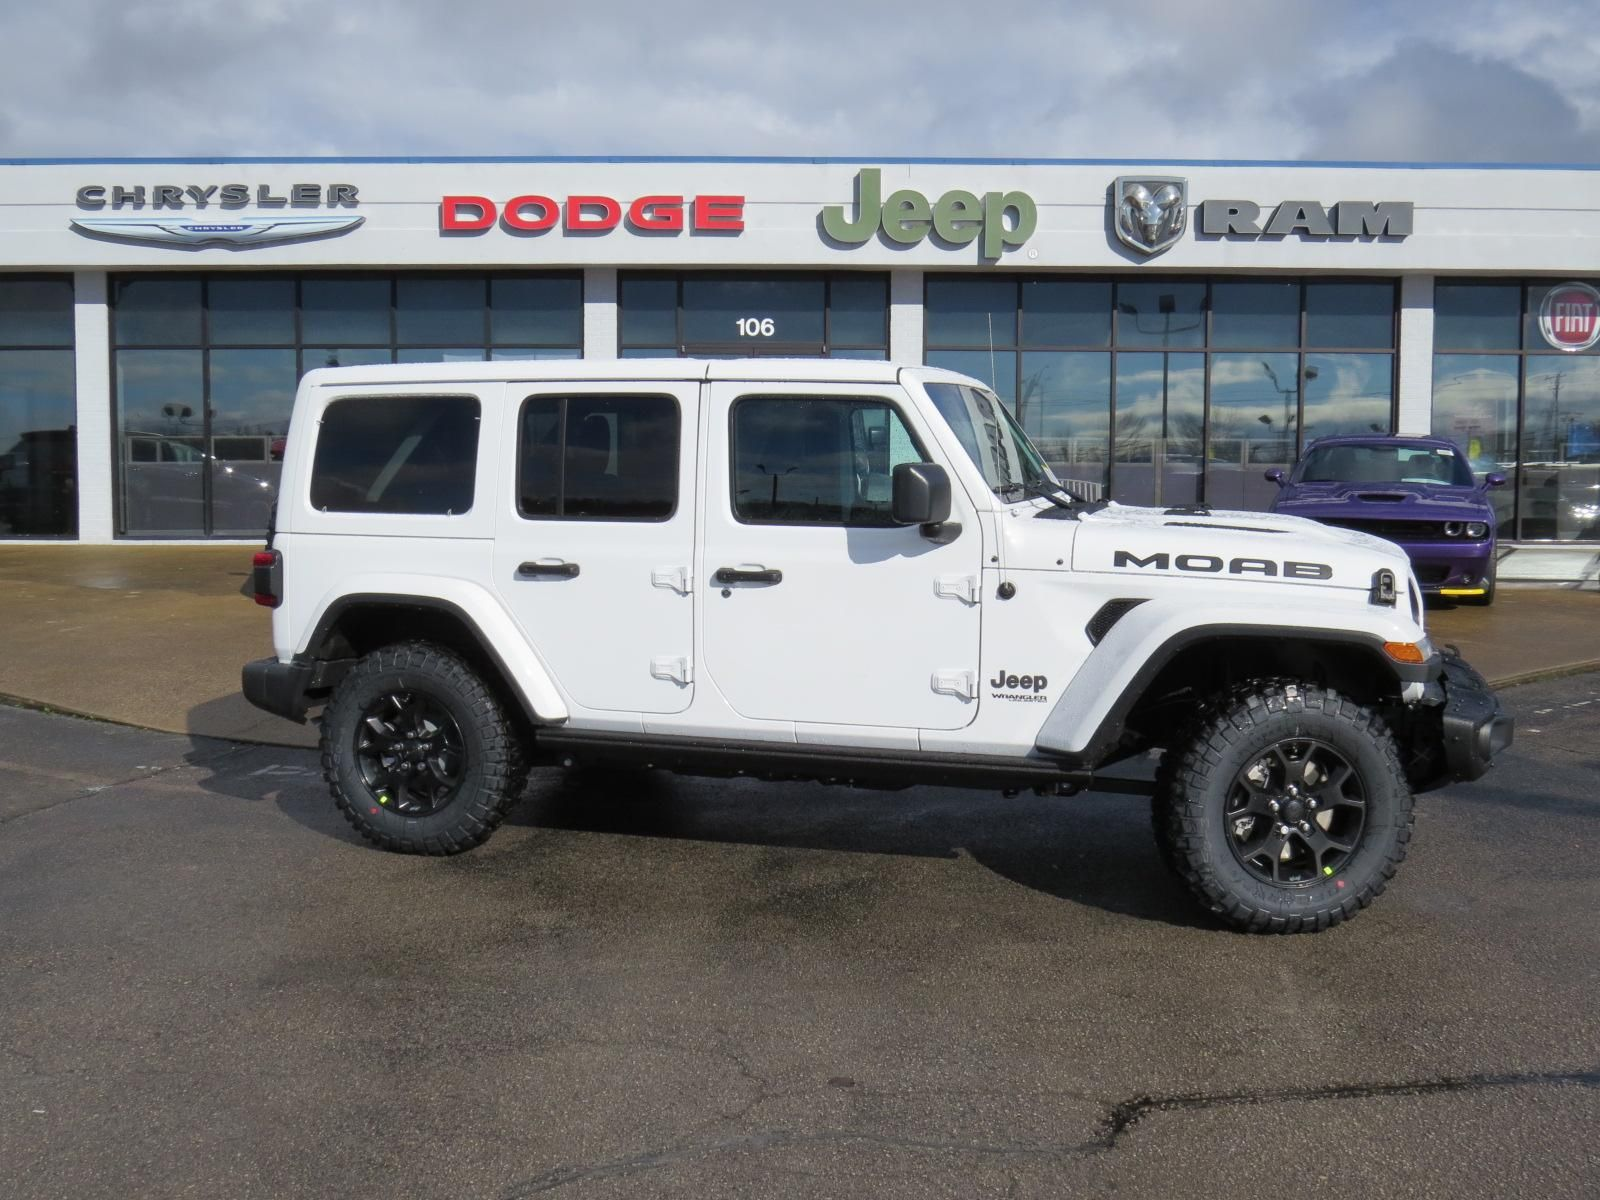 2019 Jeep Unlimited Jeep Wrangler Unlimited Rubicon Jeep Wrangler